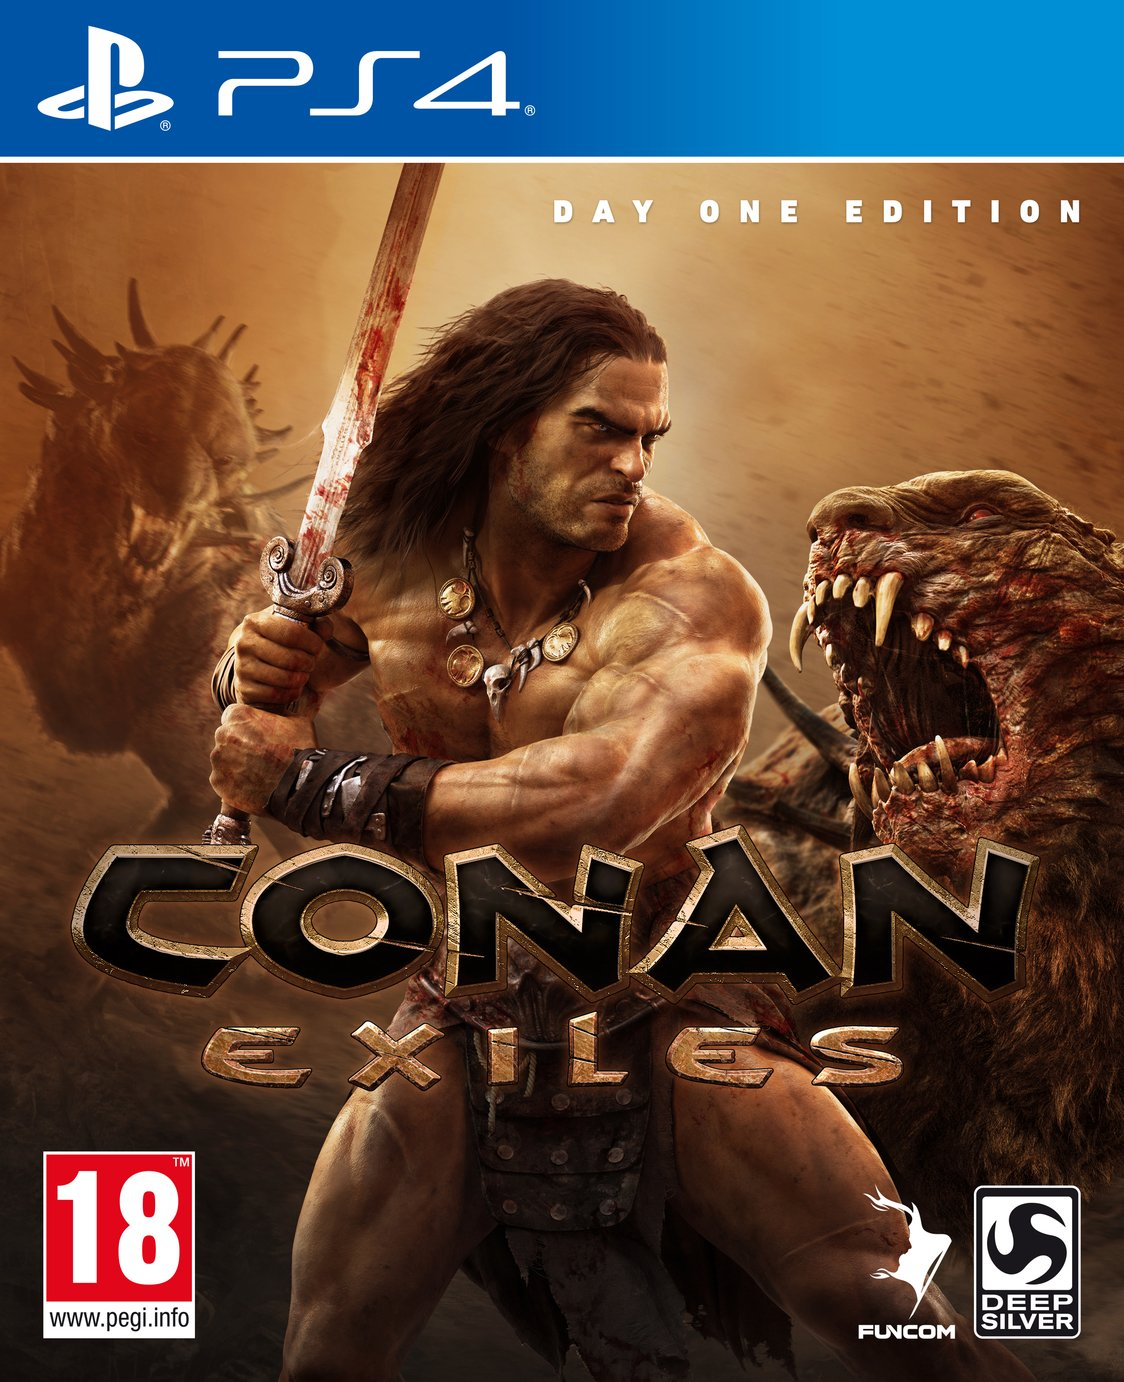 Image of Conan Exiles Day 1 Edition PS4 Pre-Order Game